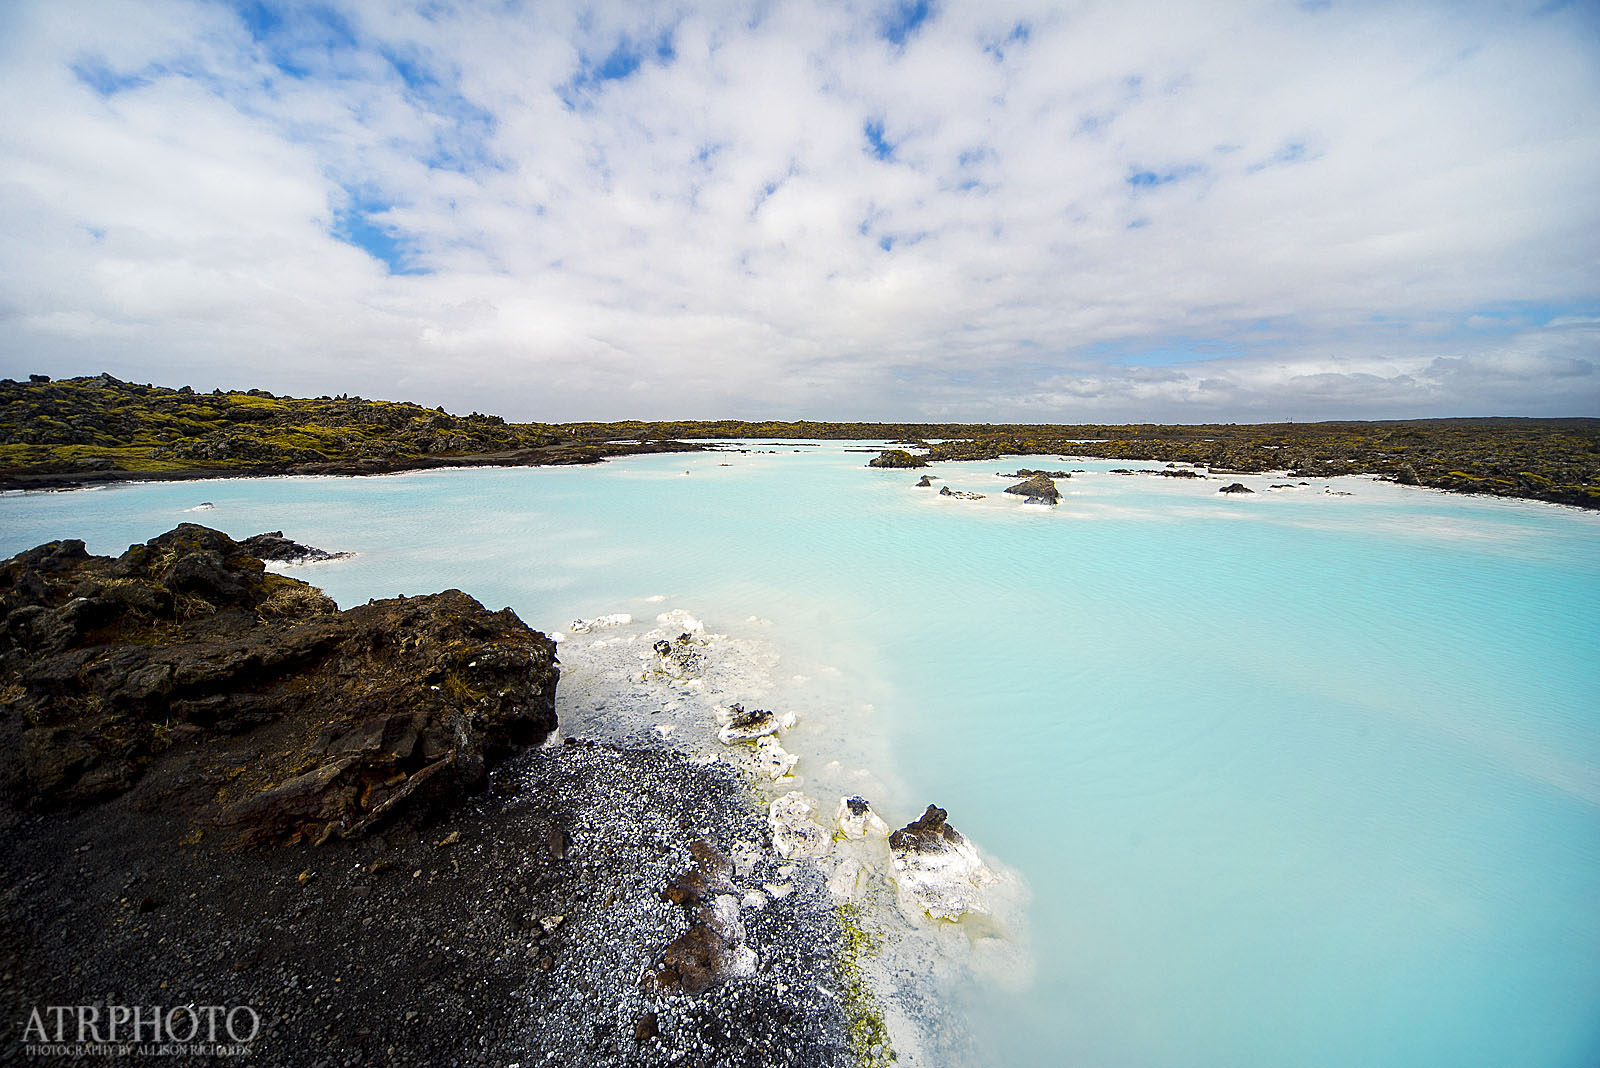 The geothermal waters of the Blue Lagoon